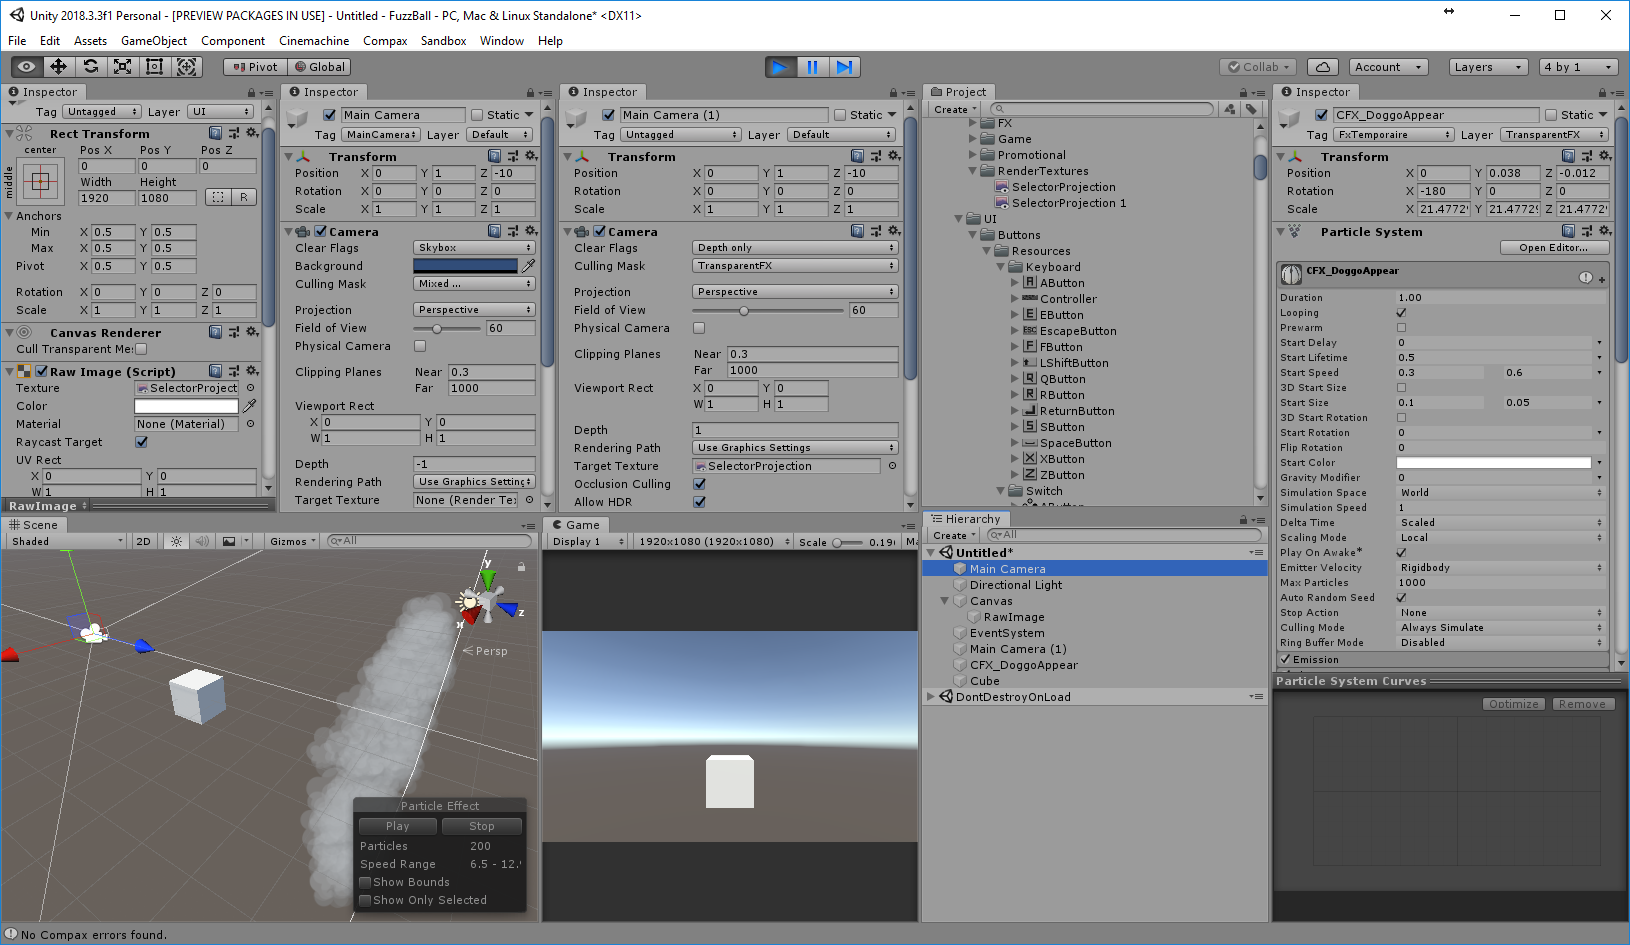 Can't display transparency via Render Texture on Raw Image - Unity